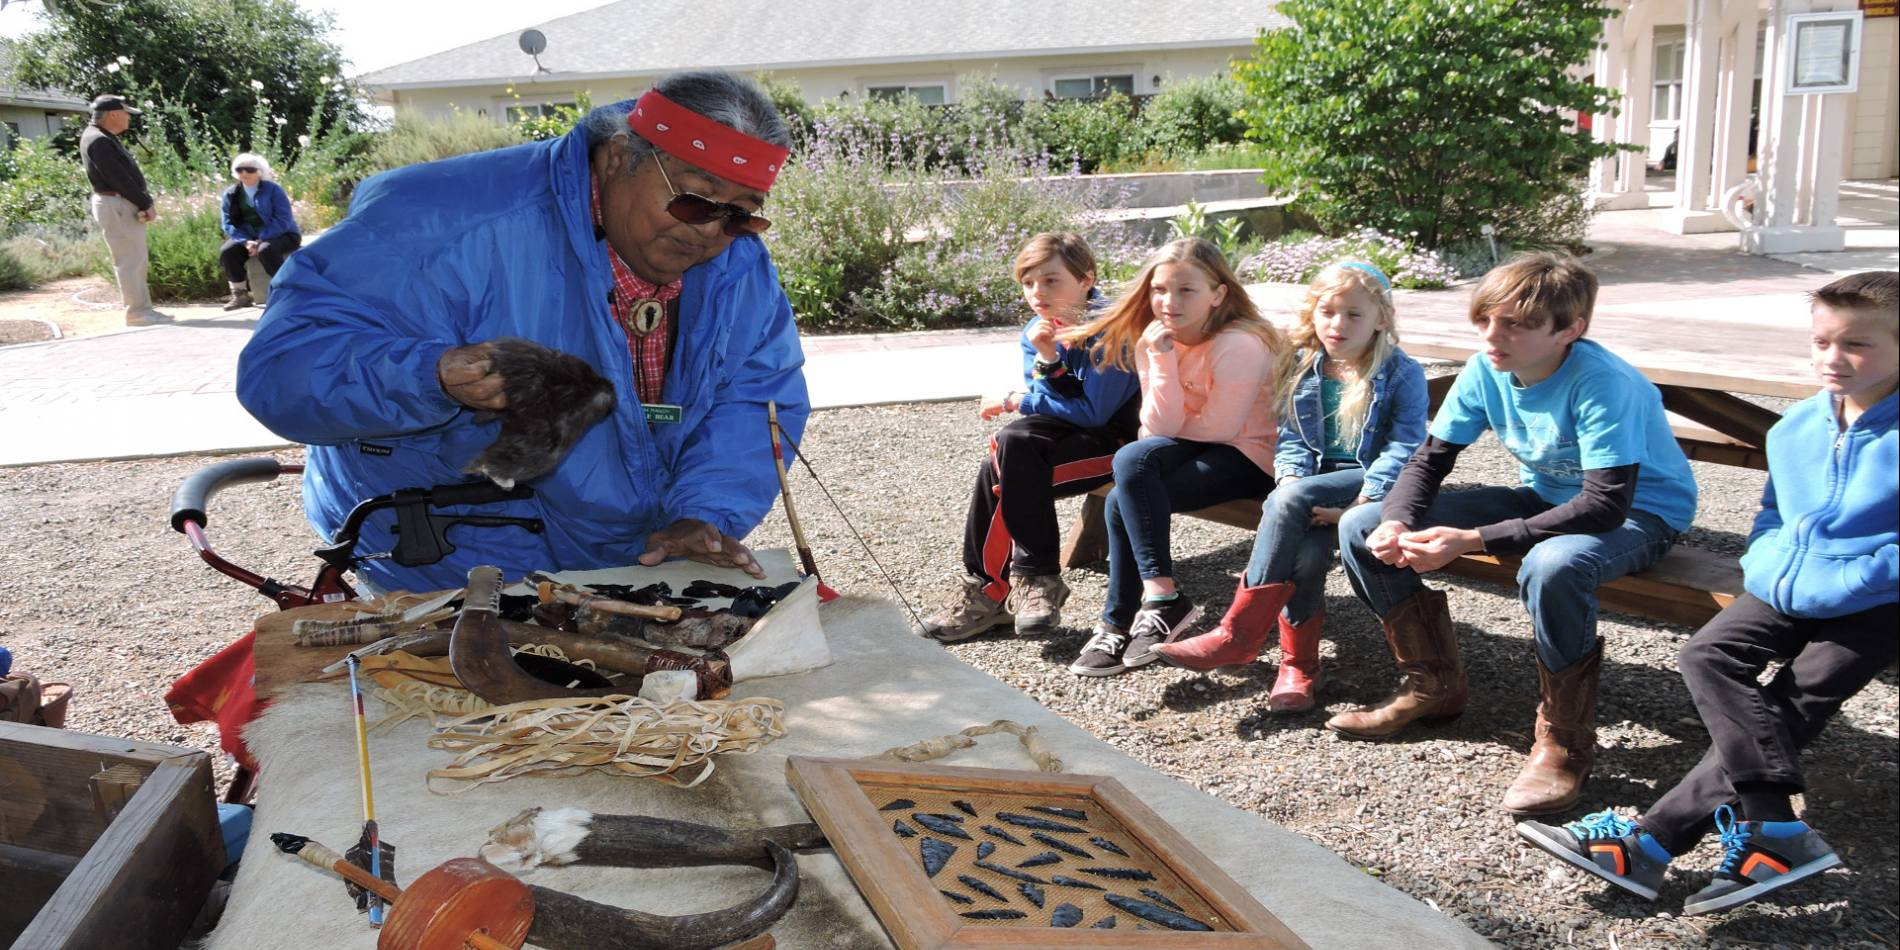 Get the Rush! is a series of fun activities for the whole family, offered on the third Saturday of every month at Rush Ranch.